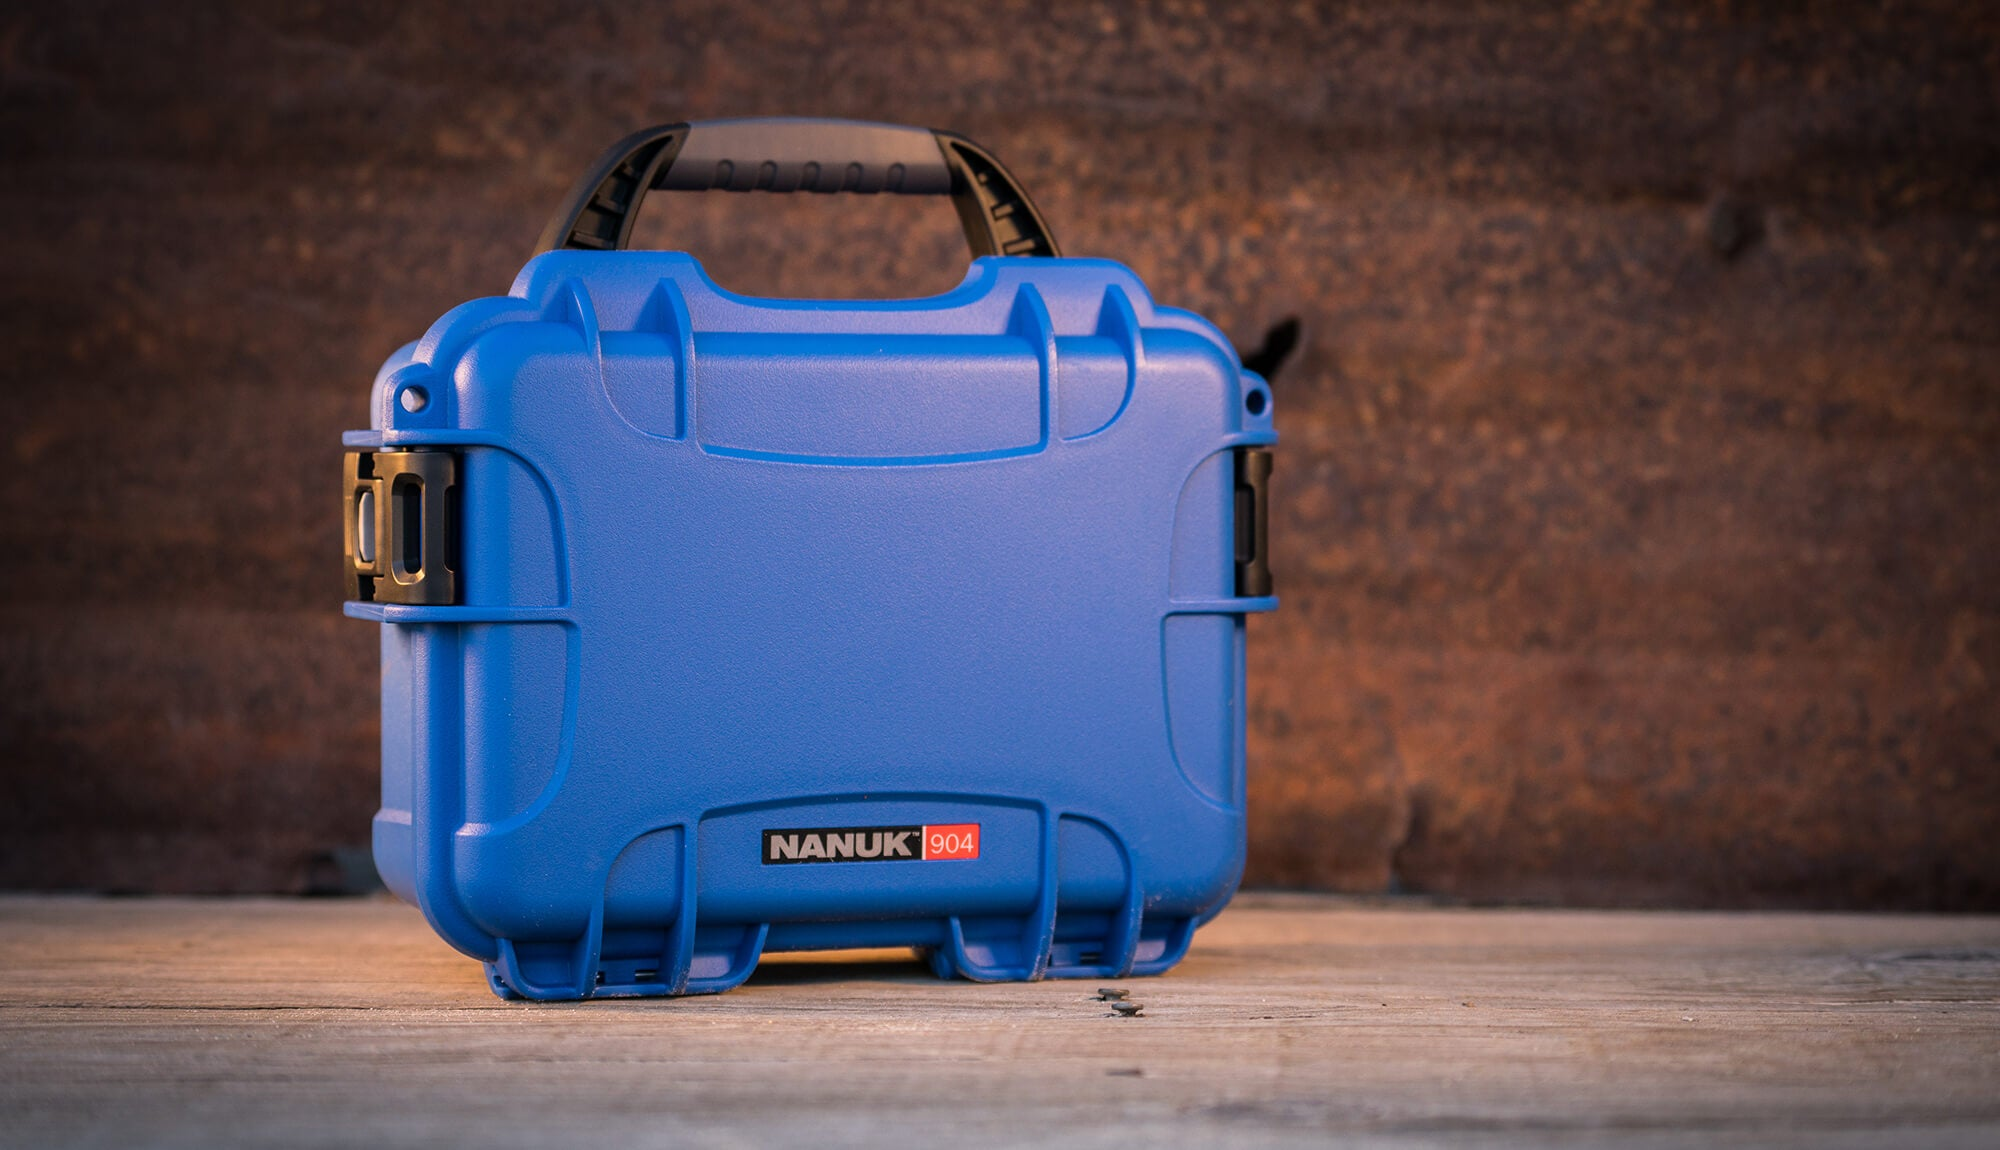 Nanuk 904 Small Case in Blue